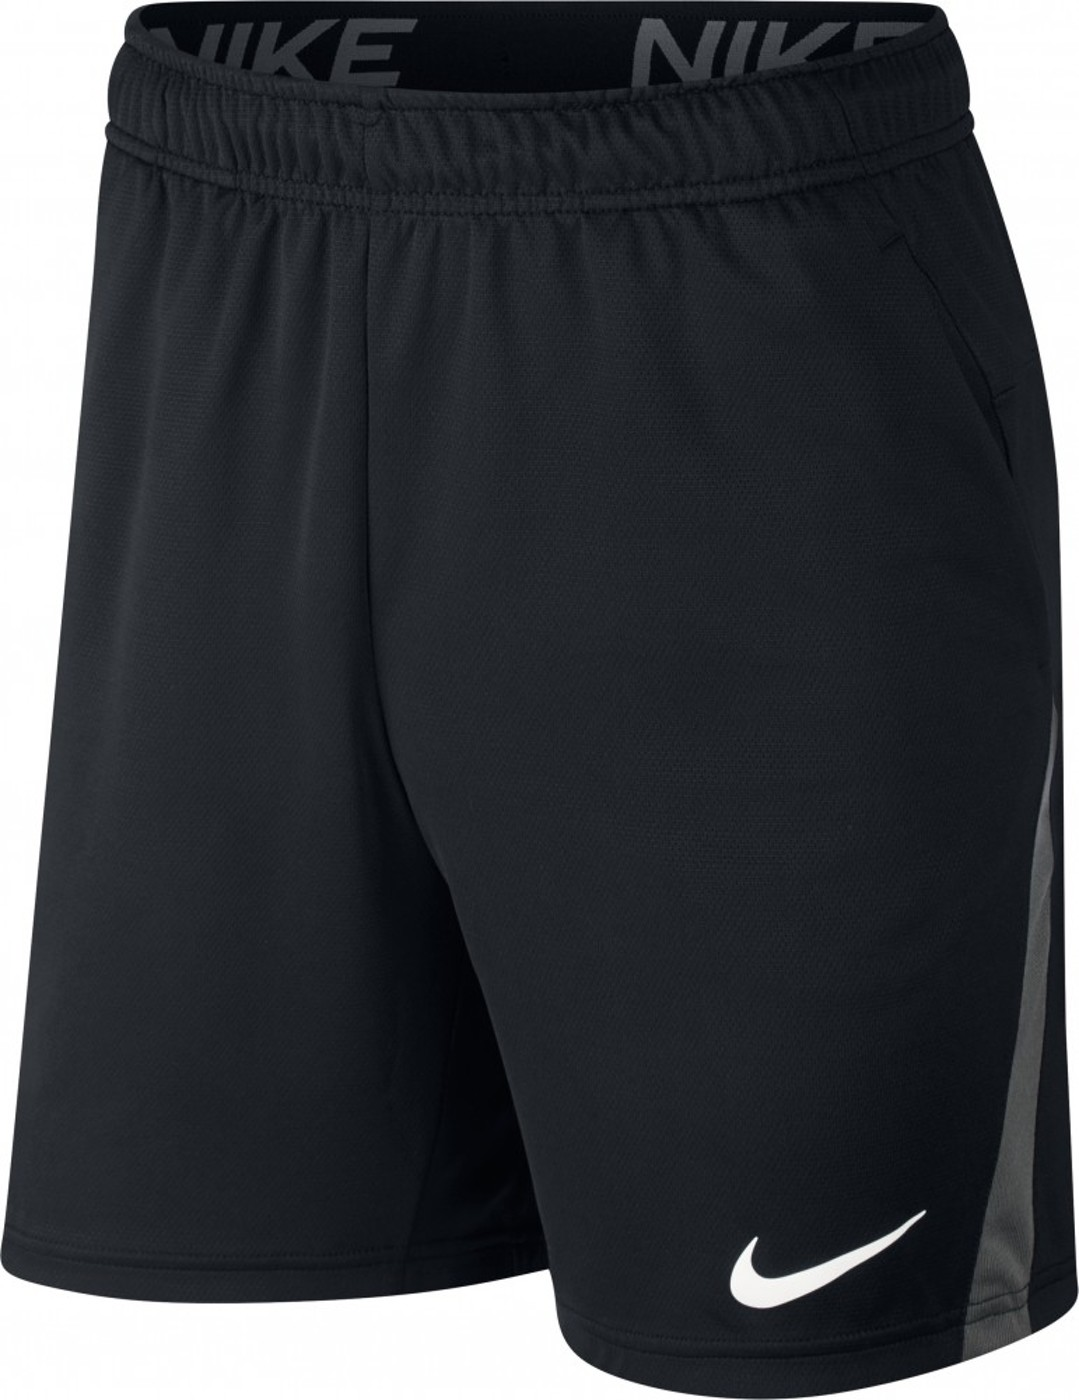 Nike Dri-FIT Training Sh - Herren